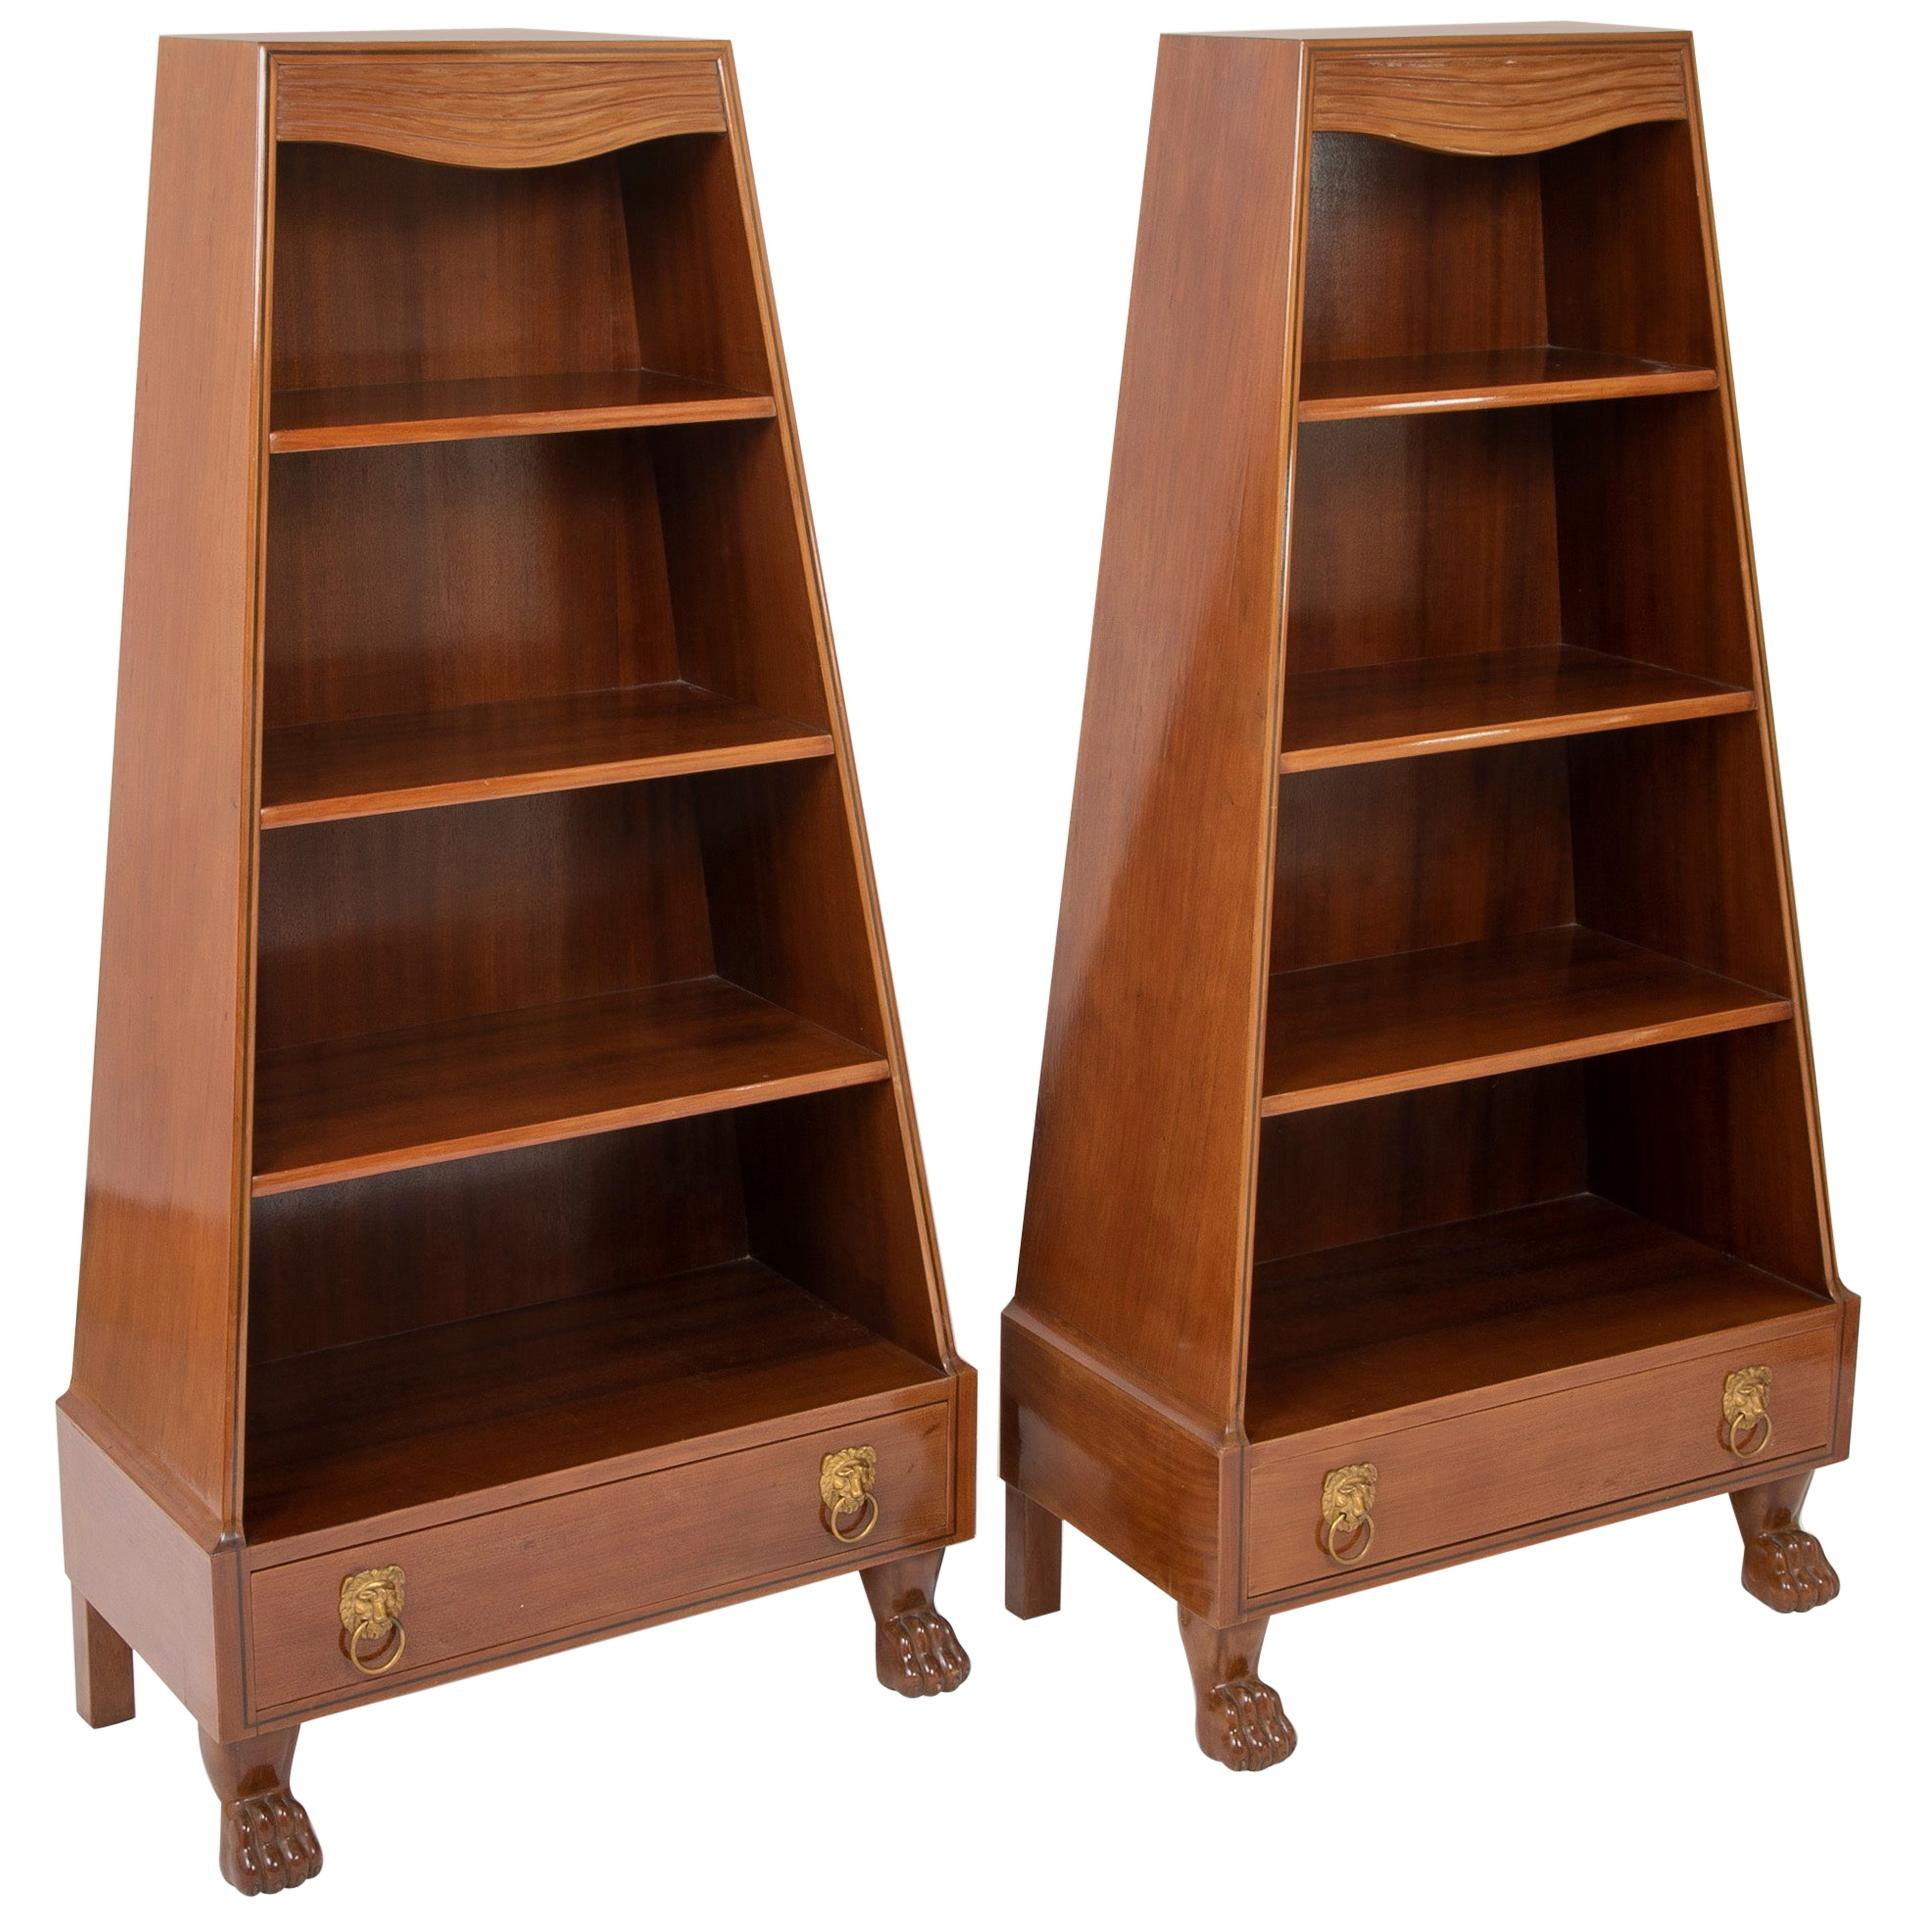 Pair of French Egyptian Revival Bookcases